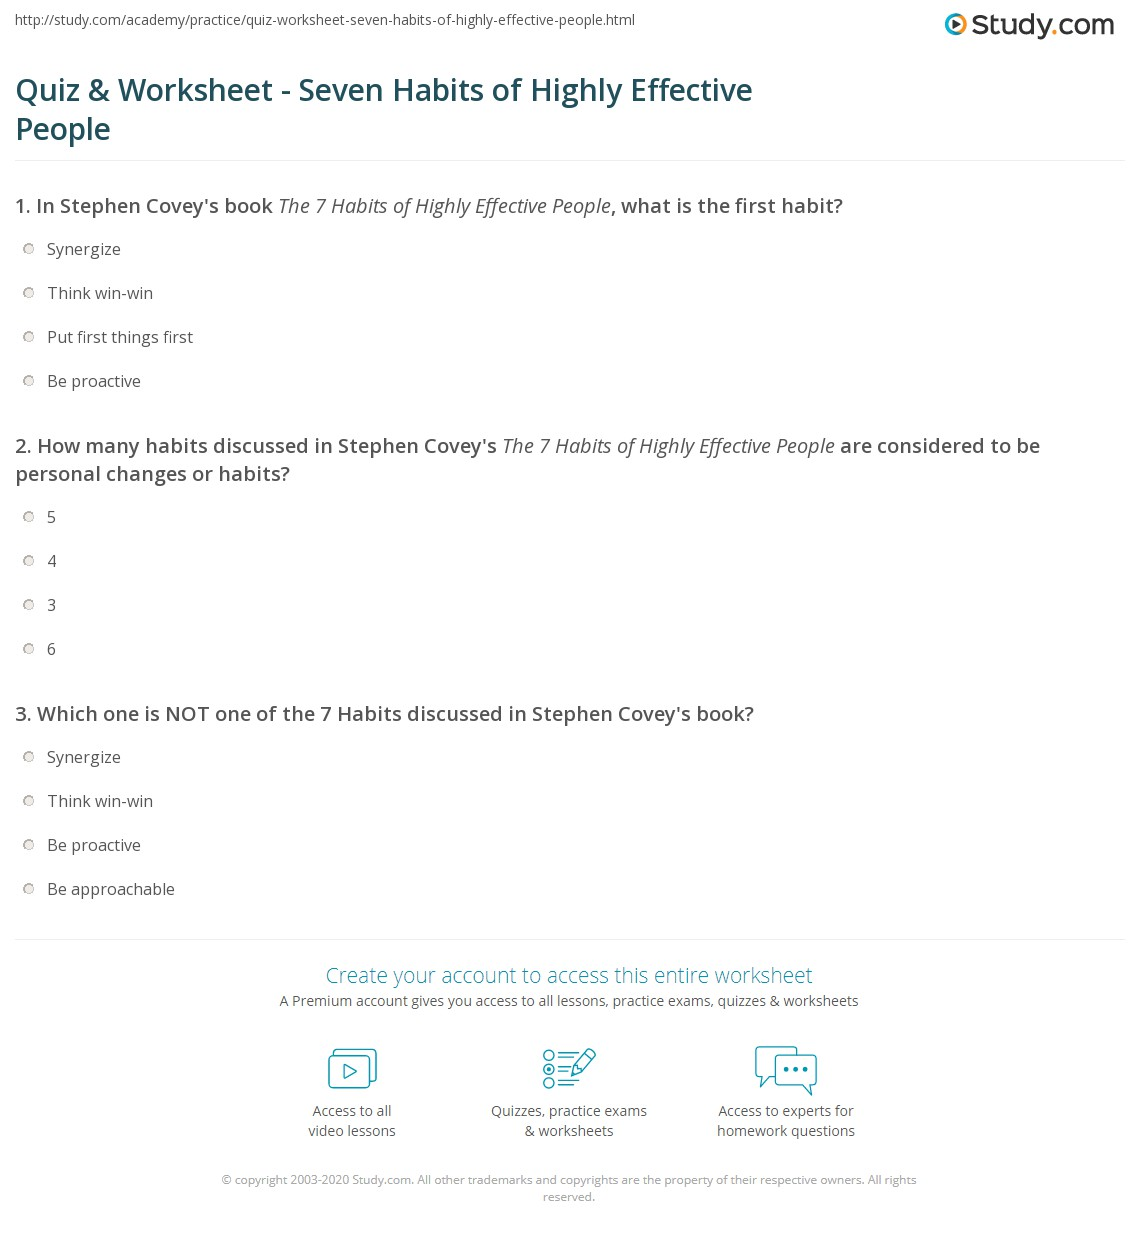 Quiz & Worksheet - Seven Habits of Highly Effective People | Study.com